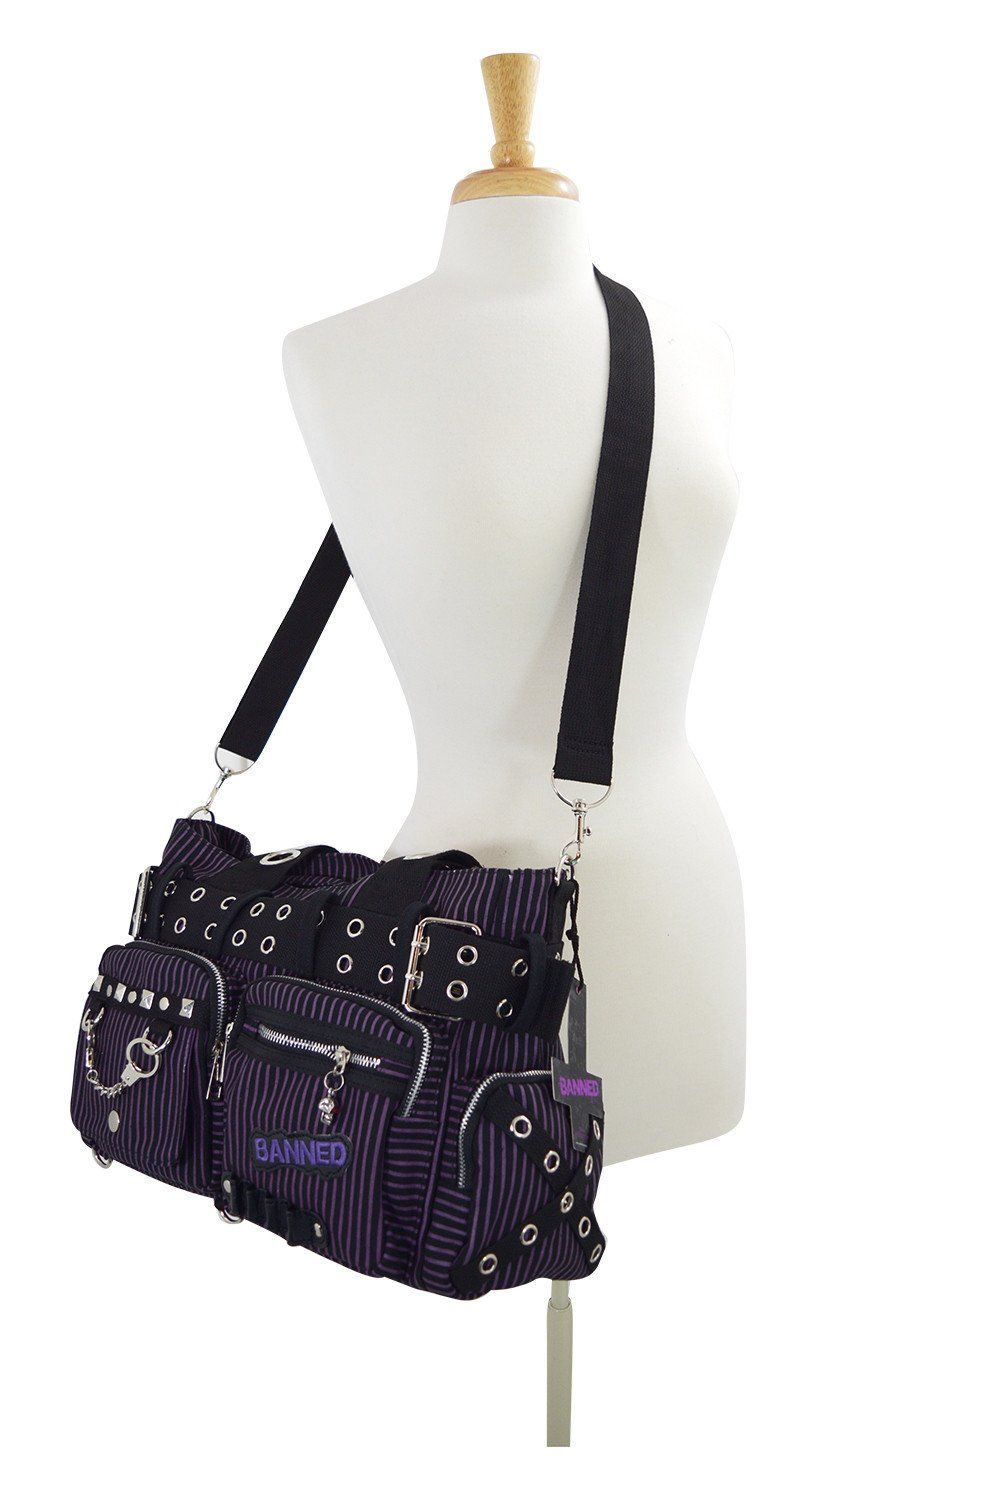 This Medium Handbag Shoulder Bag Has Lots Of Different Compartments Inside The Main Compartment There Is A Zipped Purse Pocket Two Open Pouch Pockets